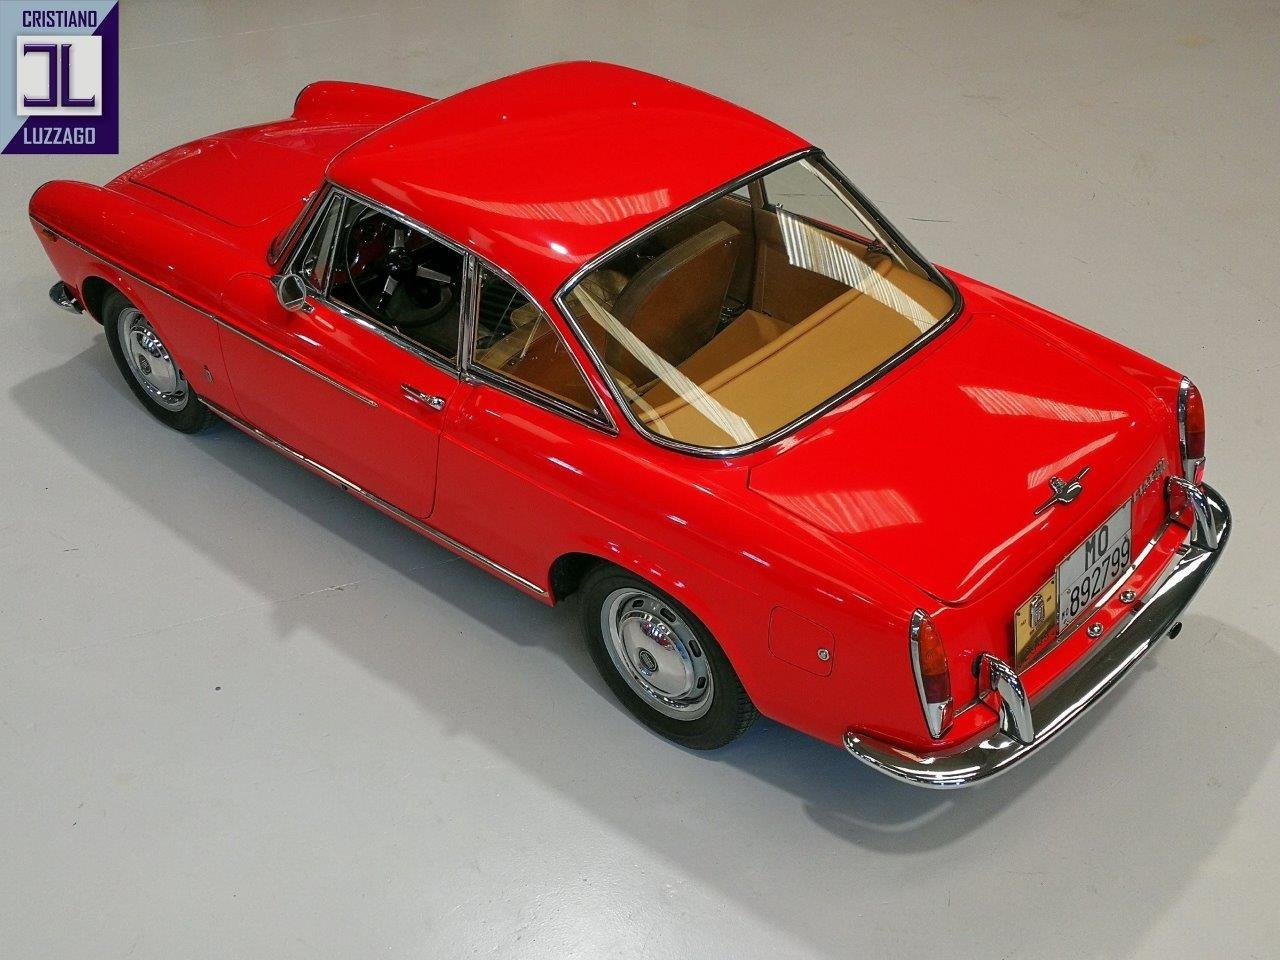 1966 FIAT 1500 COUPE' PININFARINA -3 OWNERS ONLY For Sale (picture 1 of 5)